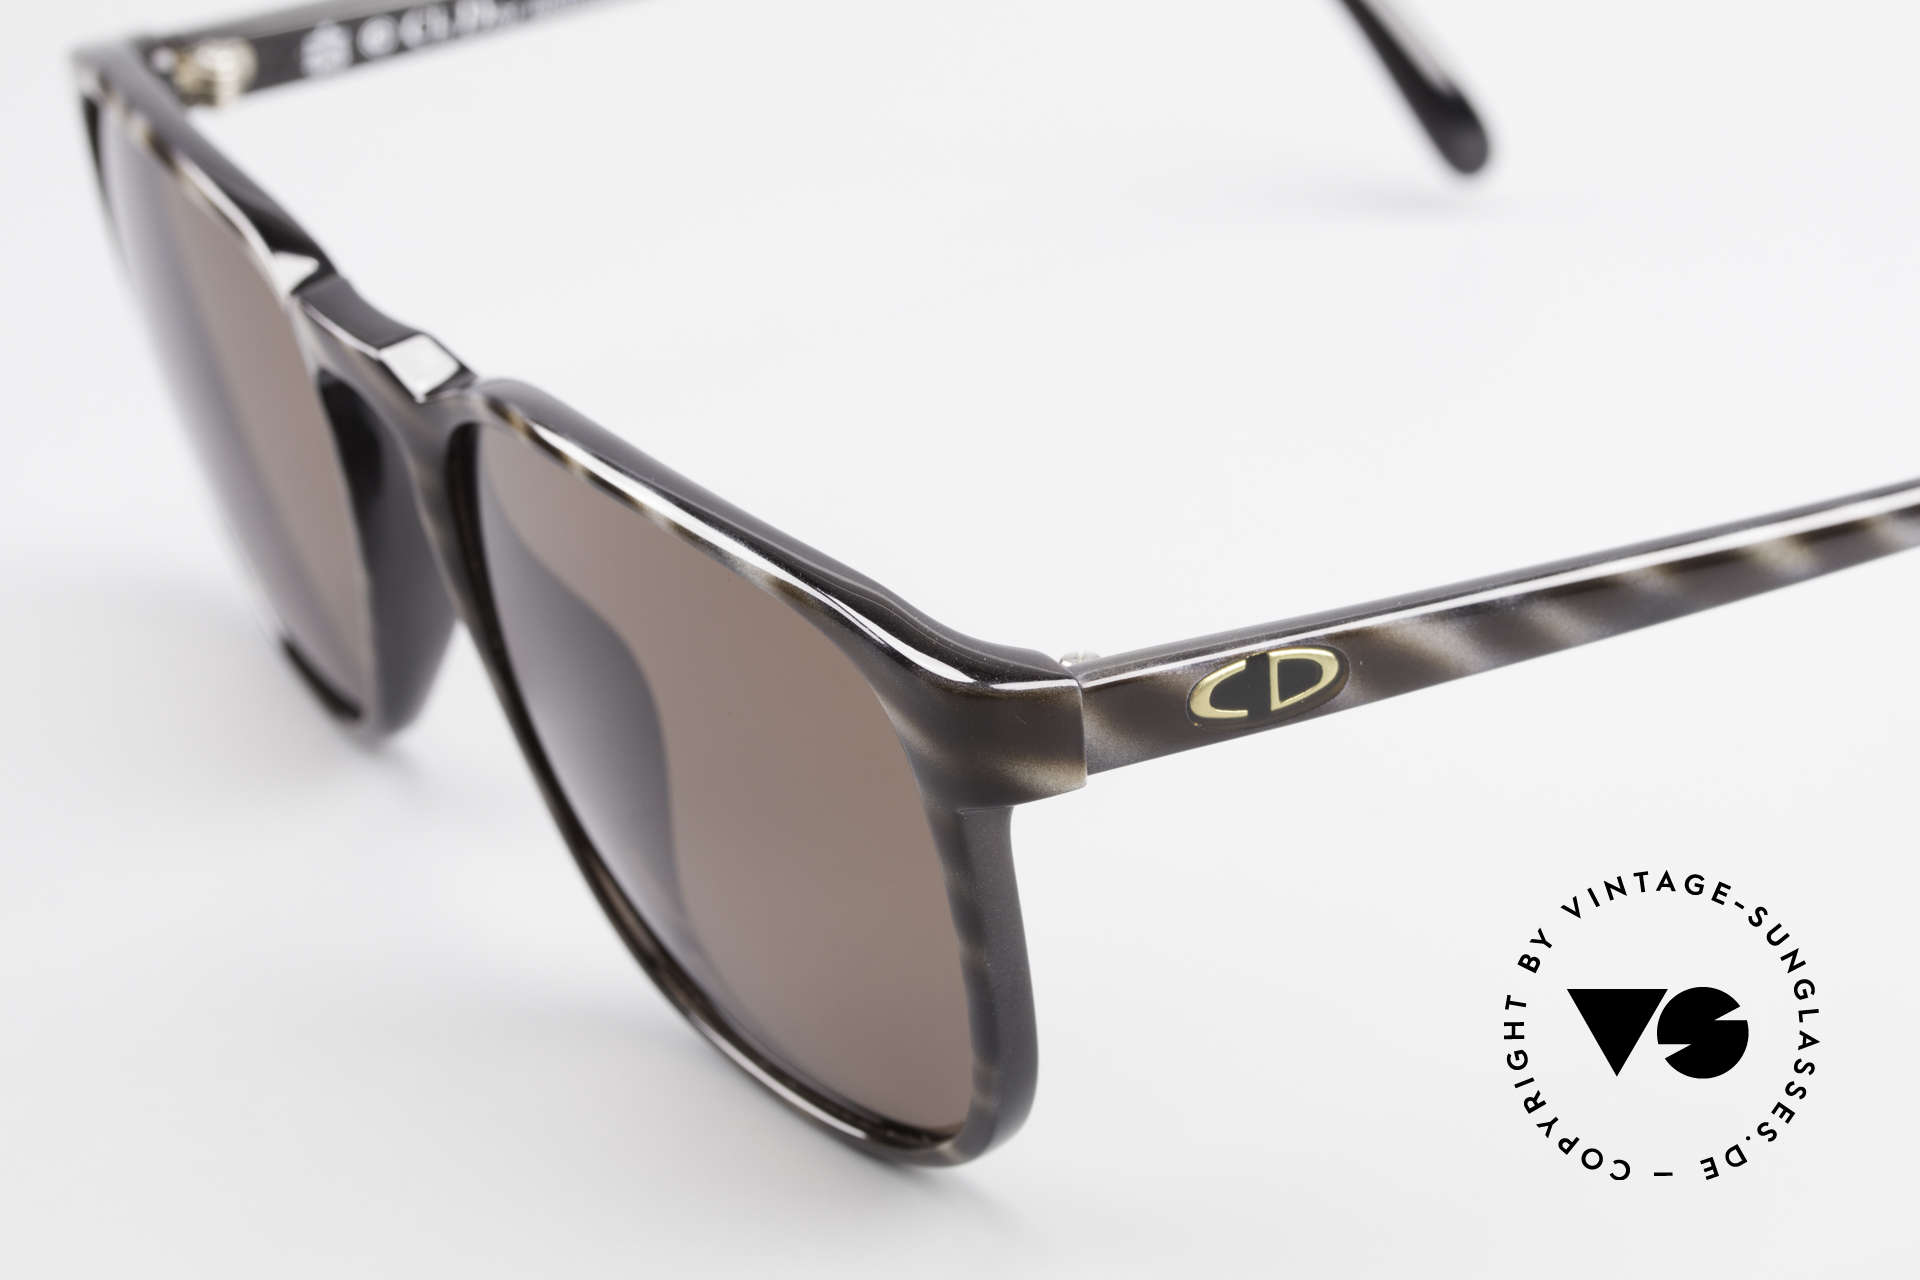 Christian Dior 2226 Monsieur 80's Optyl Shades, rarity of the legendary old Monsieur Series by Dior, Made for Men